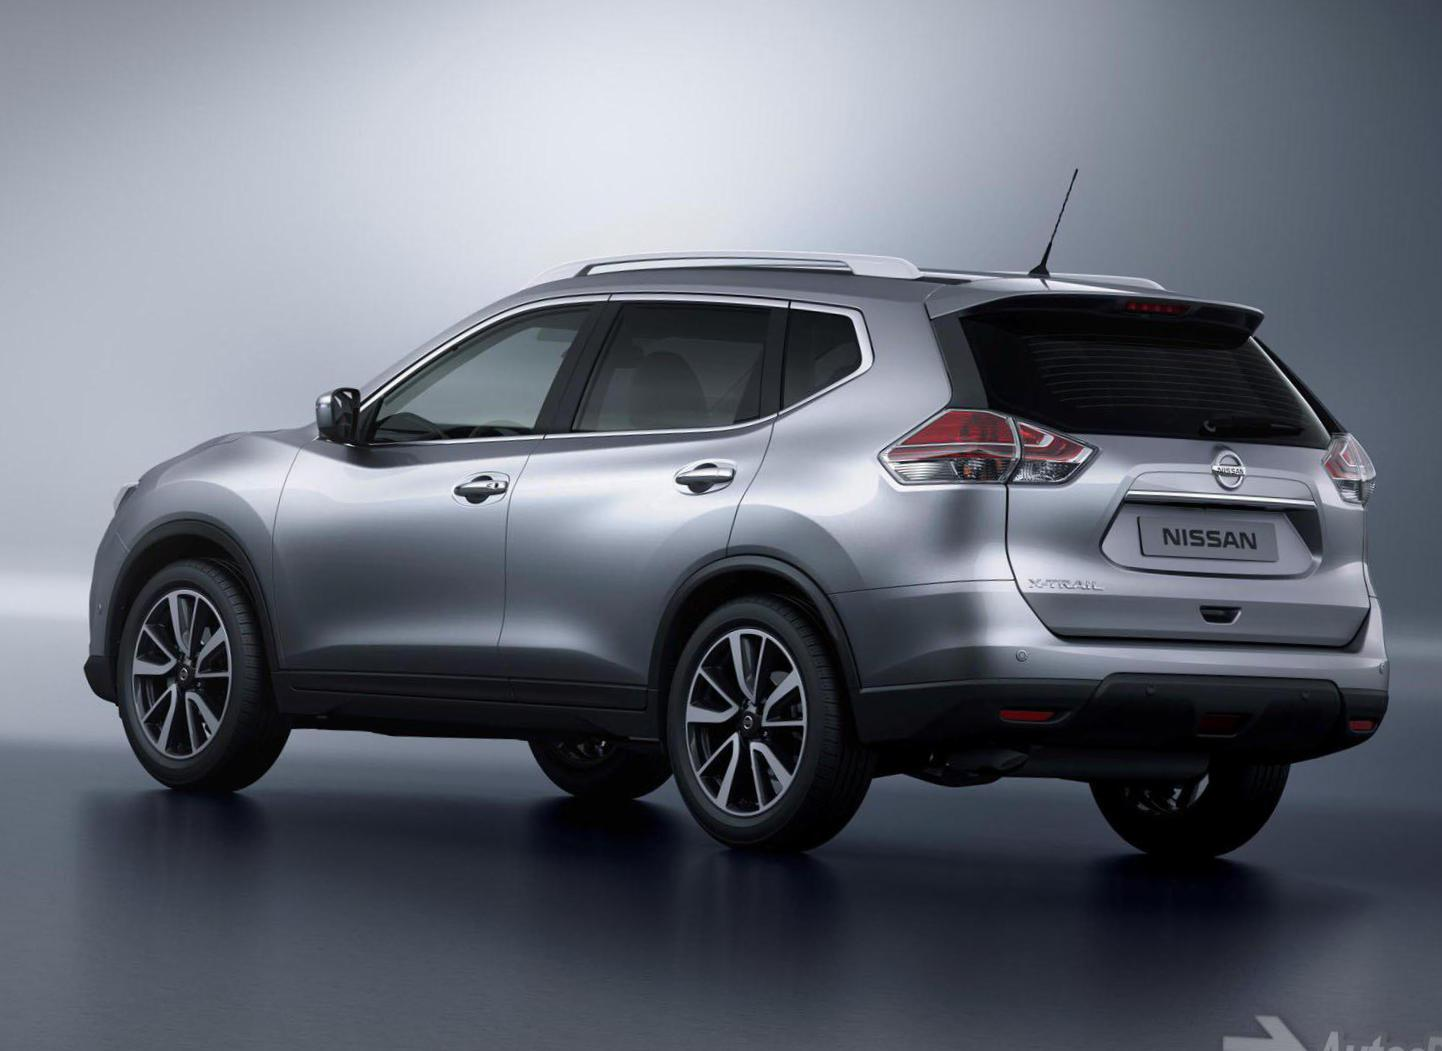 Nissan X-Trail price 2013